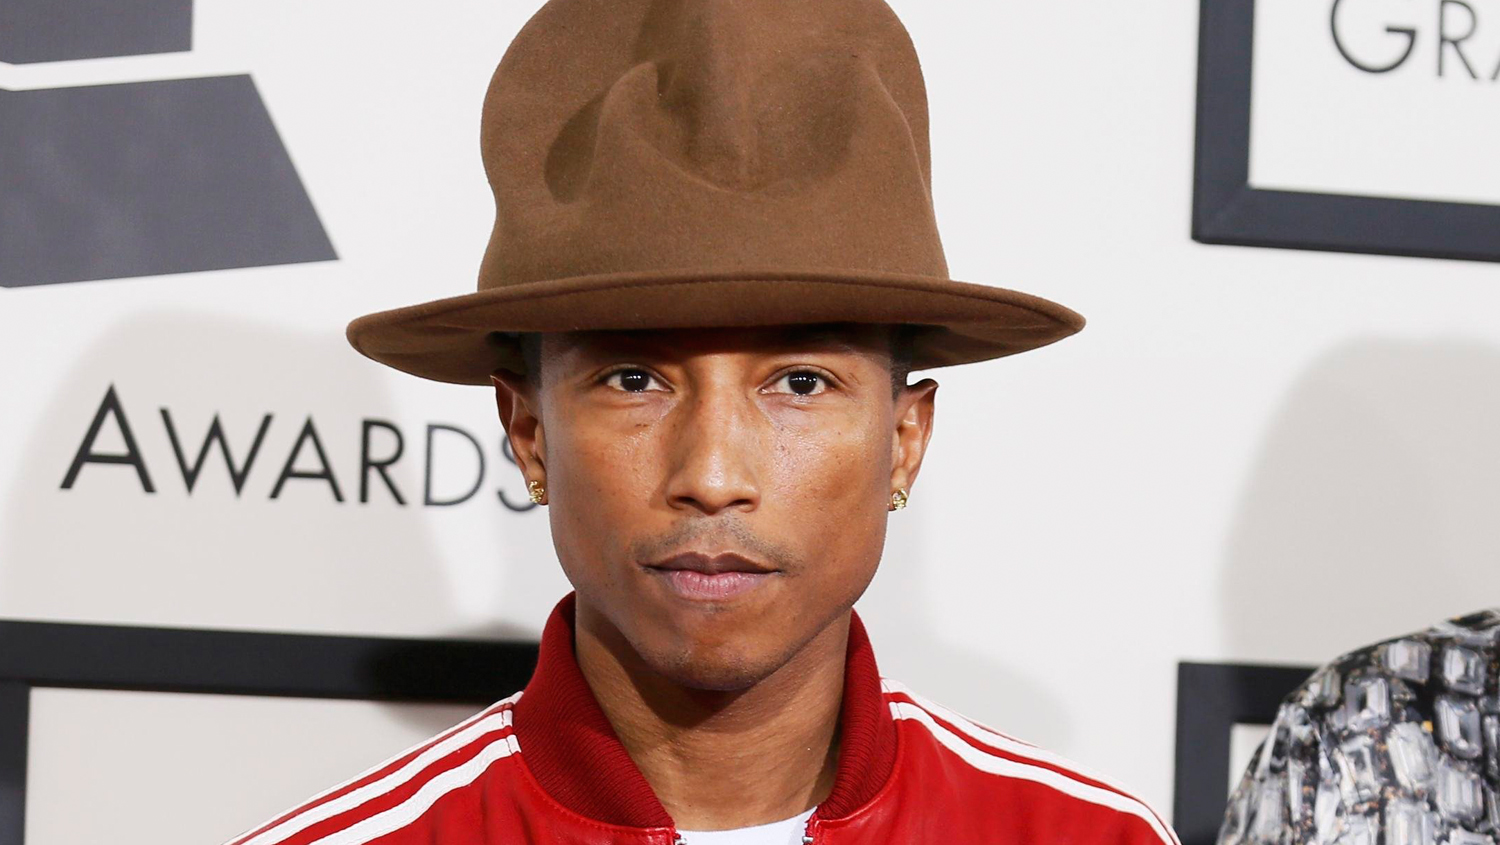 1f20b3b8e Pharrell's giant Grammys hat finds new home at Newseum